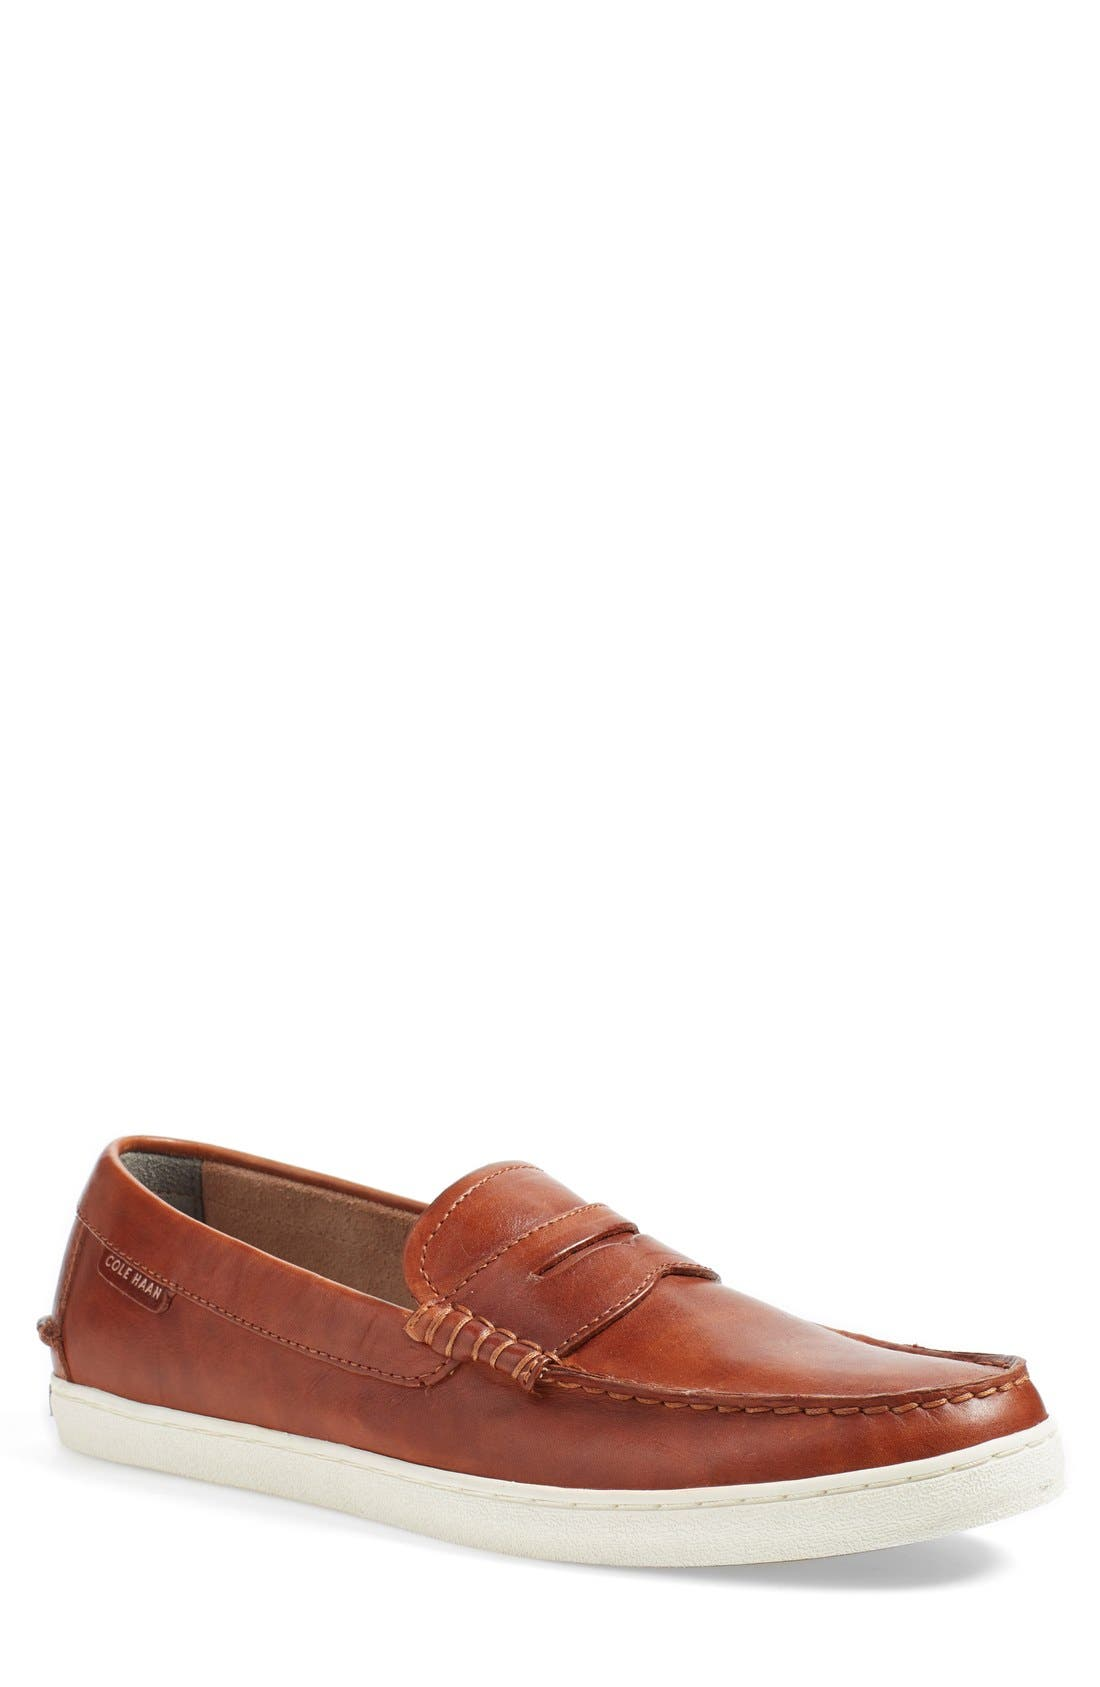 ce60b597f18 Men s Cole Haan Loafers   Slip-Ons